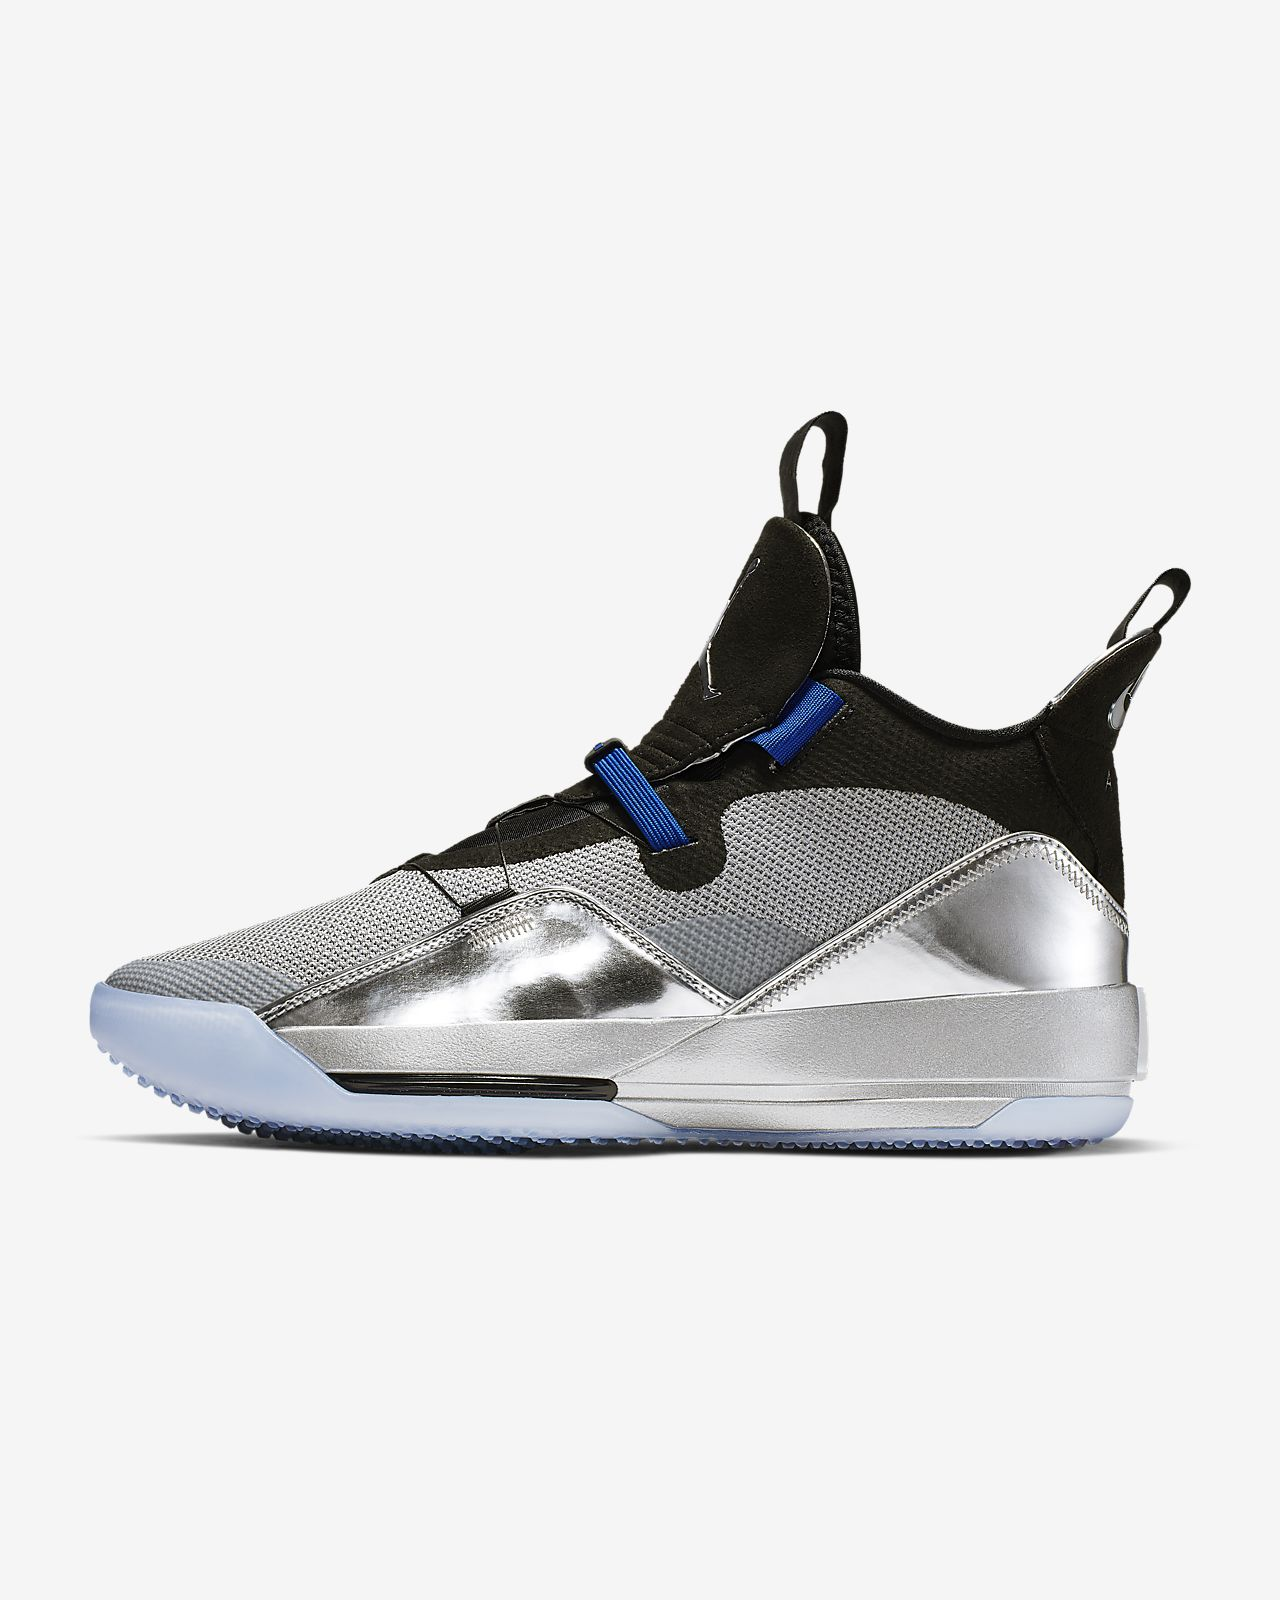 Air Jordan XXXIII Basketballschuh